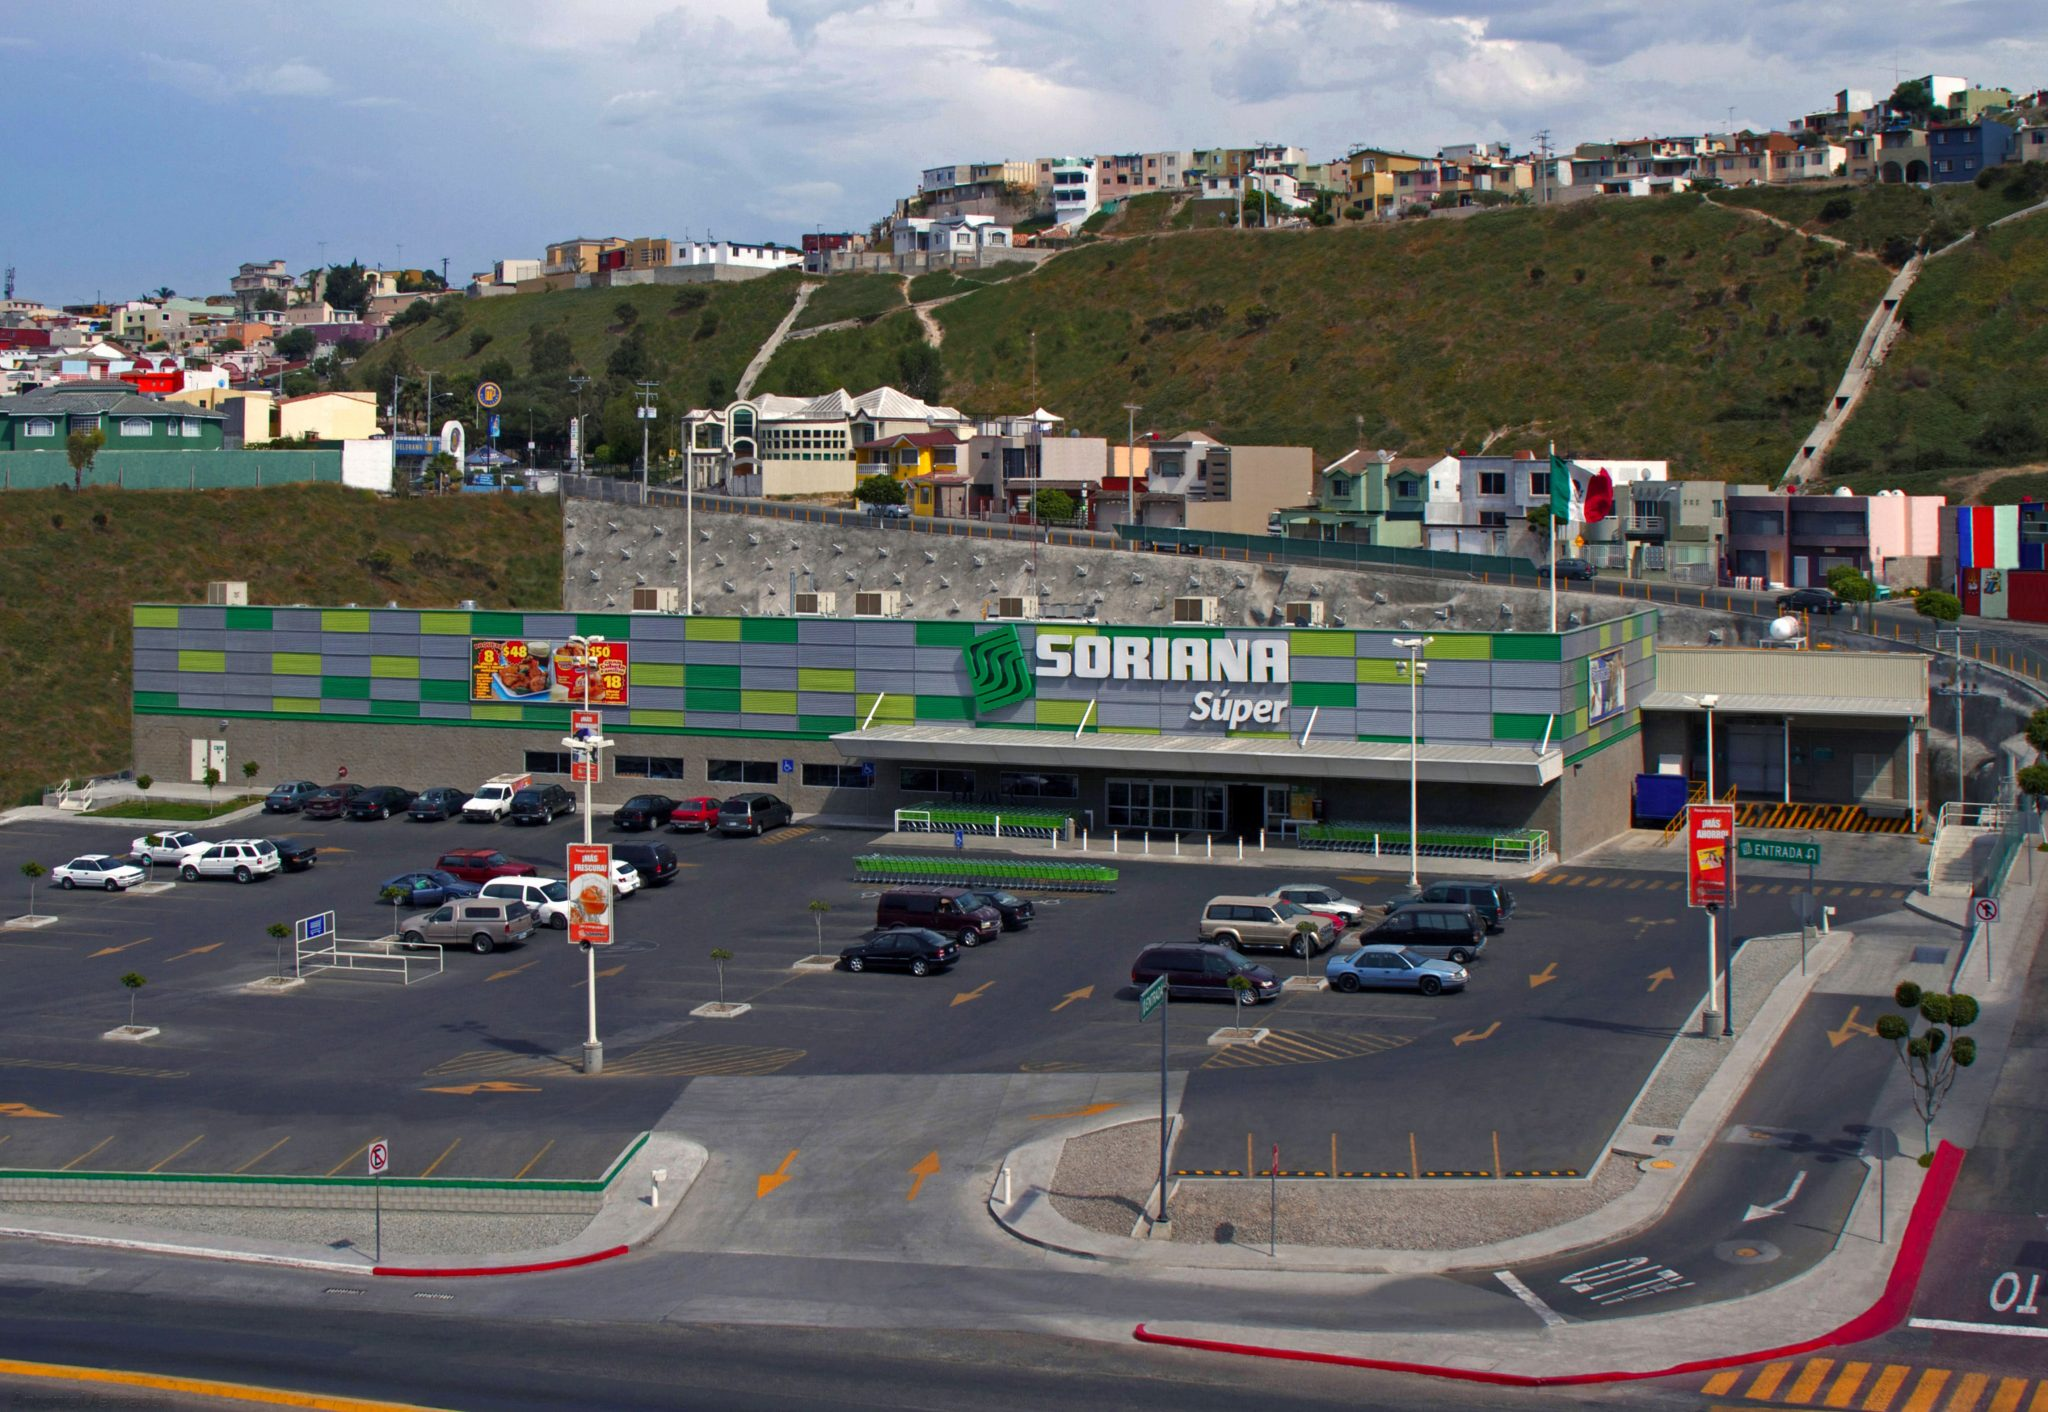 Aerial view of Soriana Supermarket in Tijuana